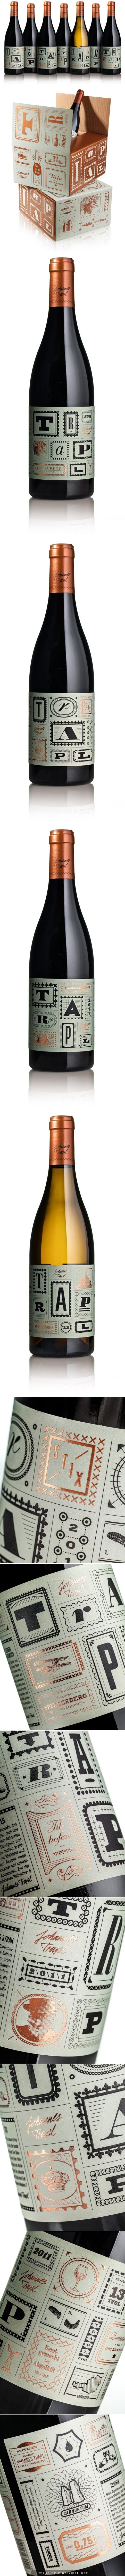 Trapl Wine by Typejockeys how nice is this wine #packaging PD